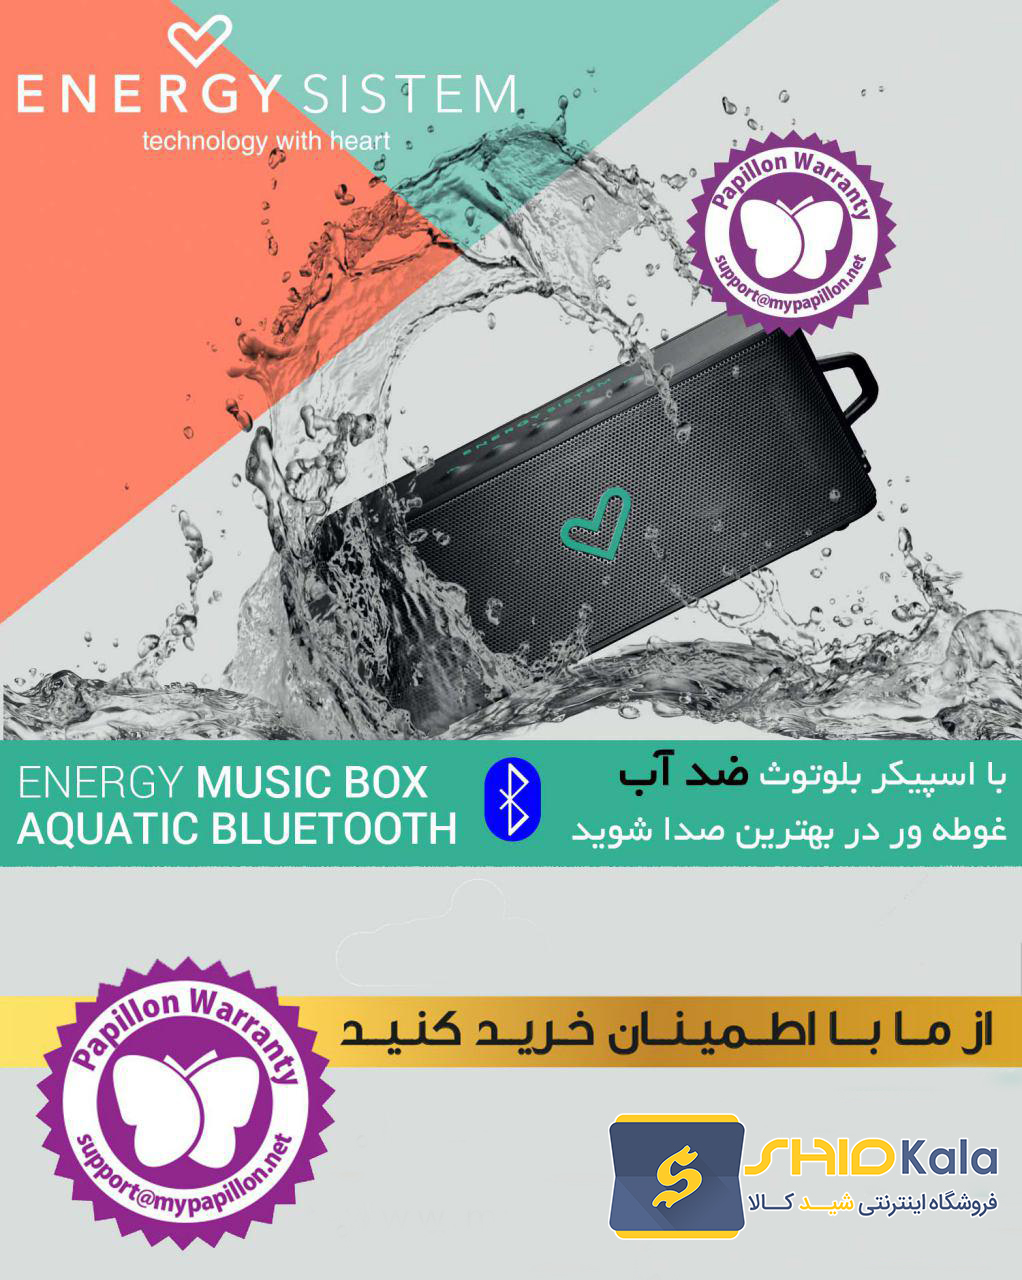 ENERGY MUSIC BOX AQUATIC